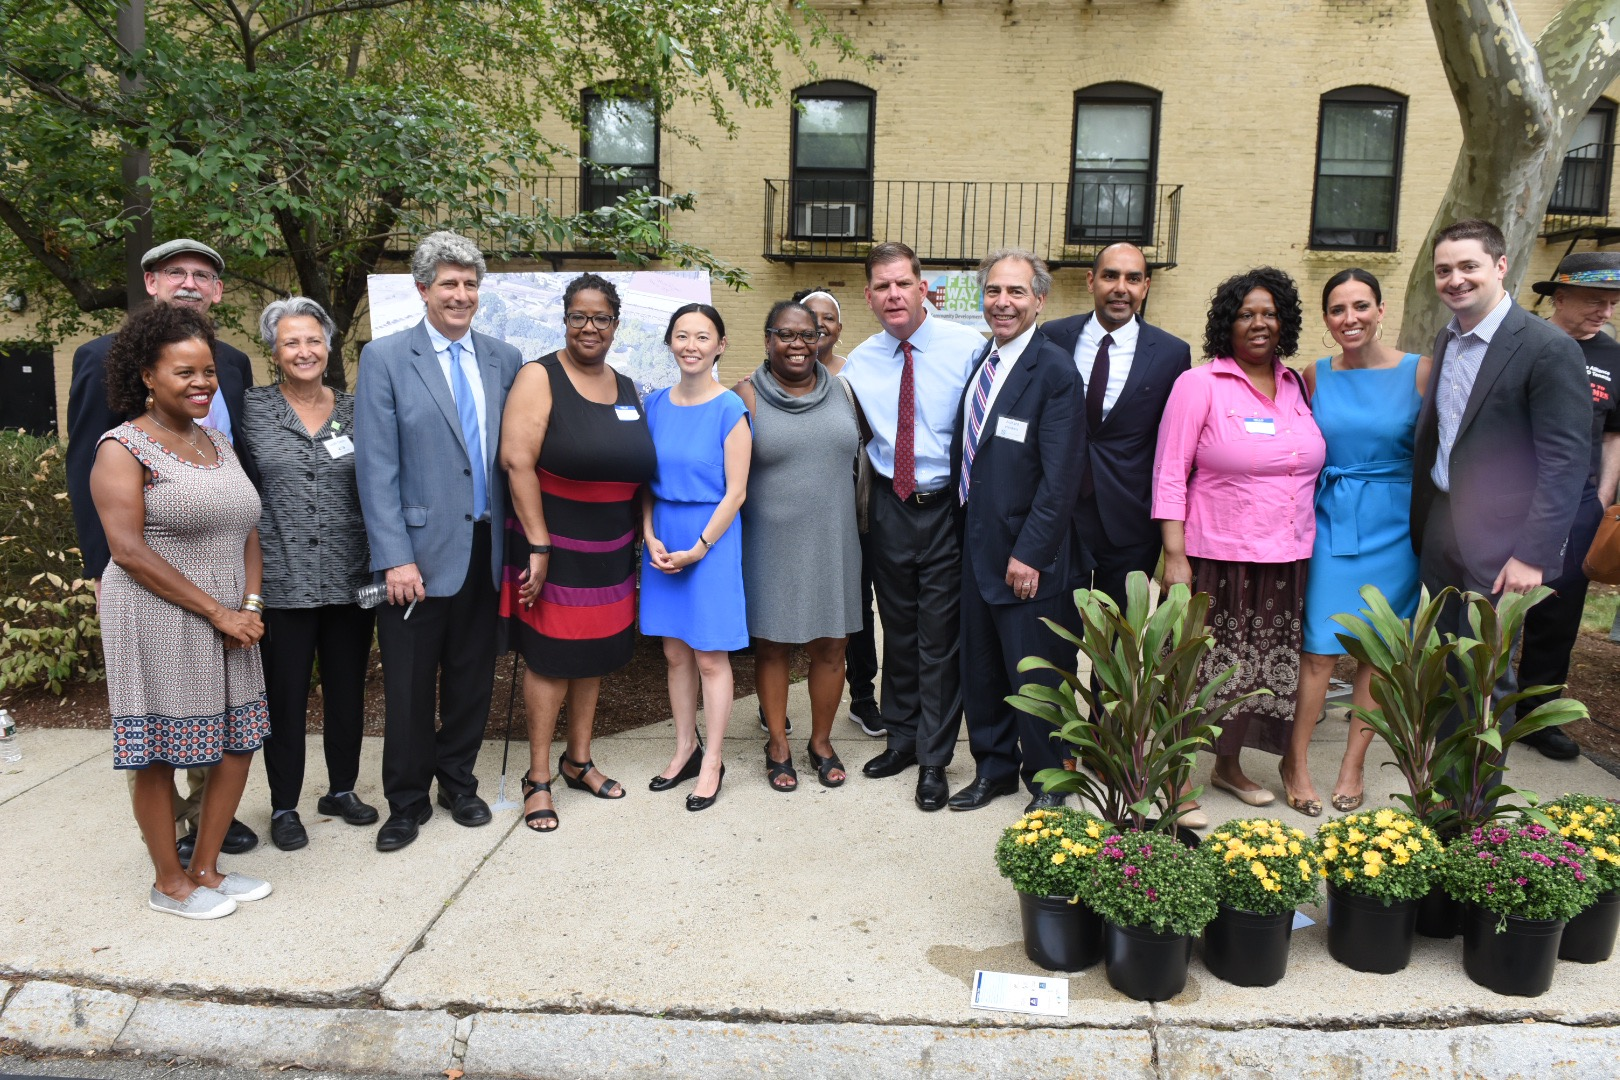 Image for celebration of affordable housing in lower roxbury